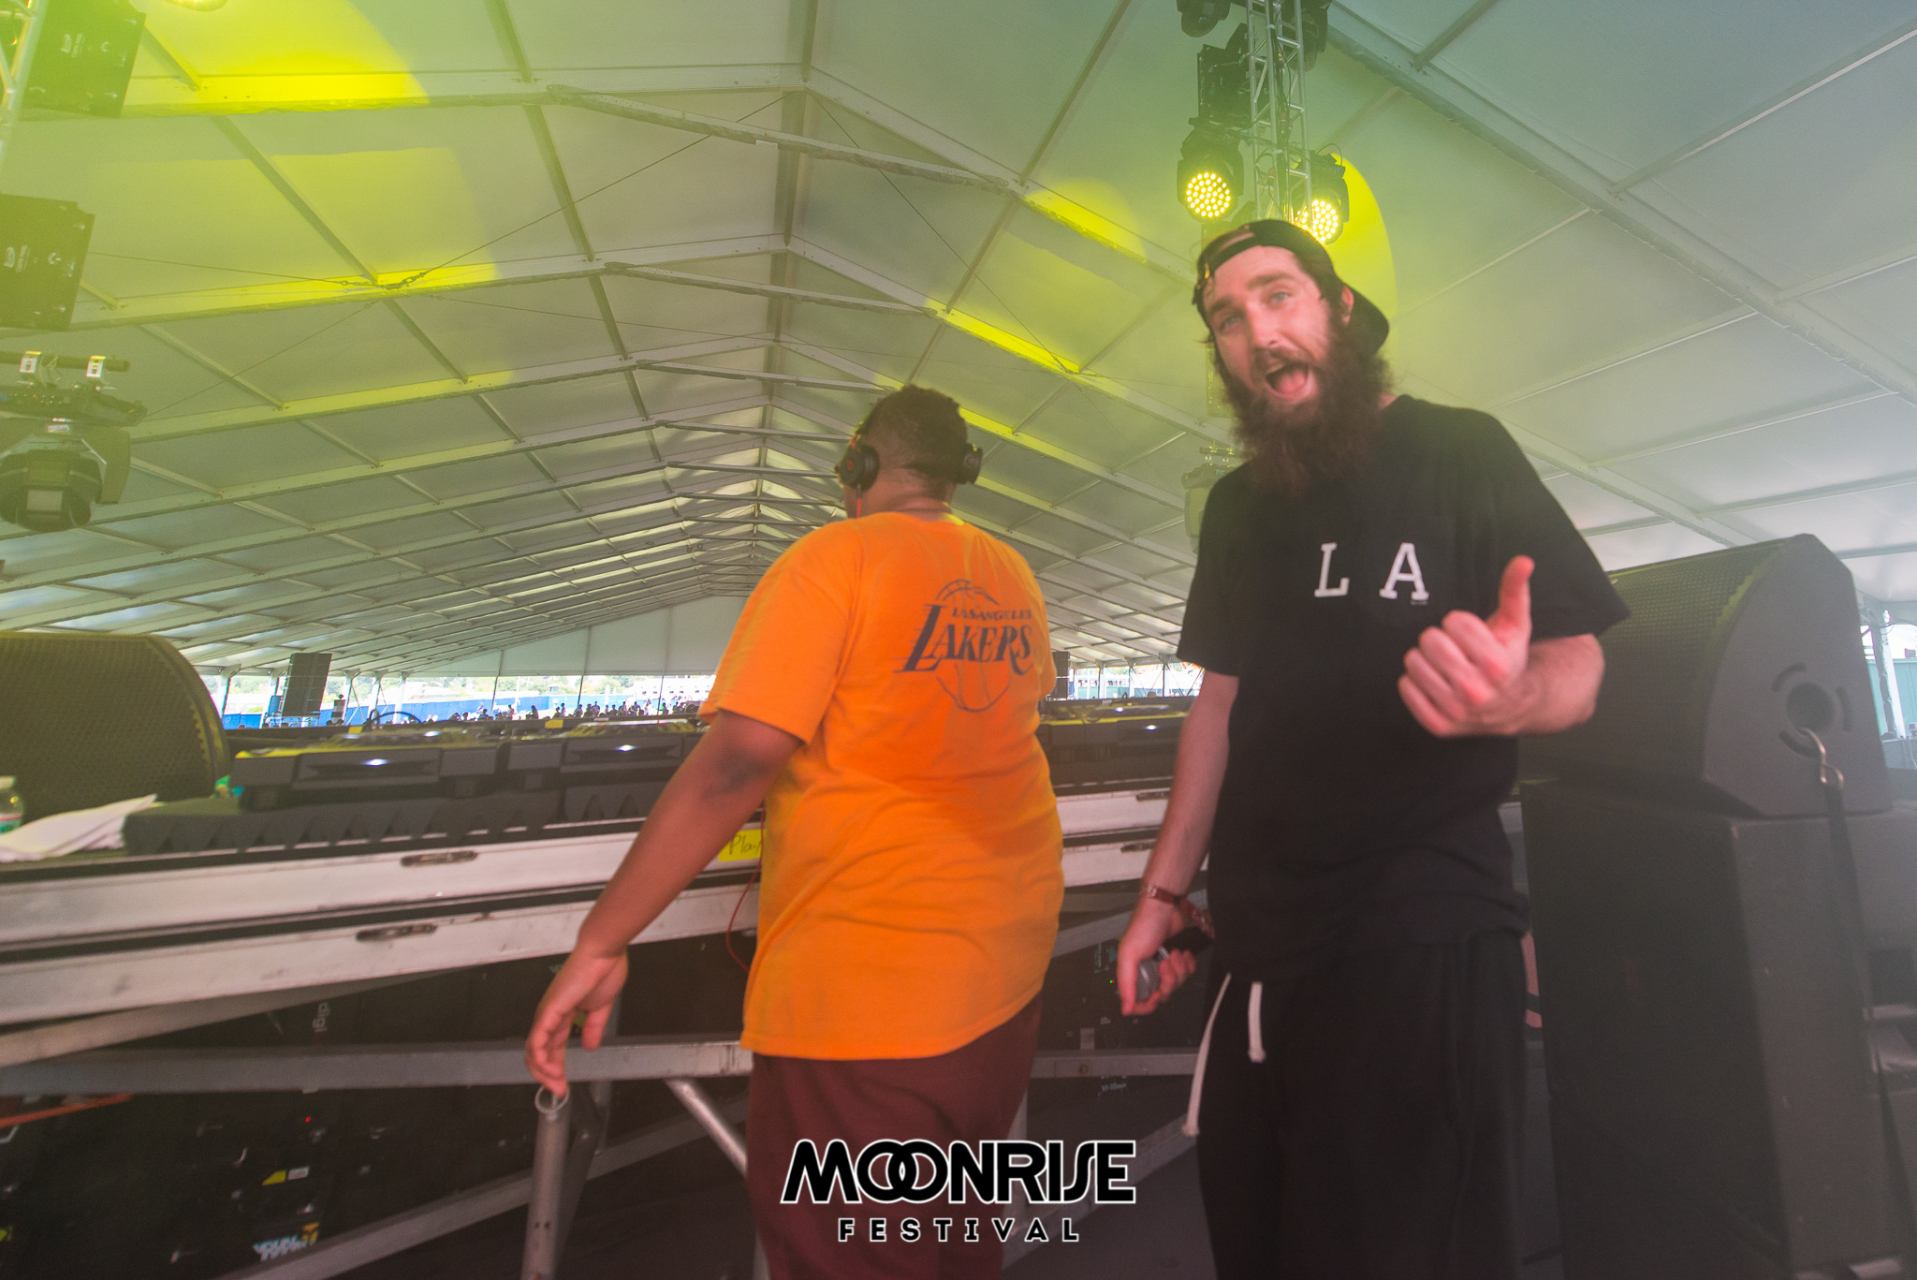 Moonrise_day2-51